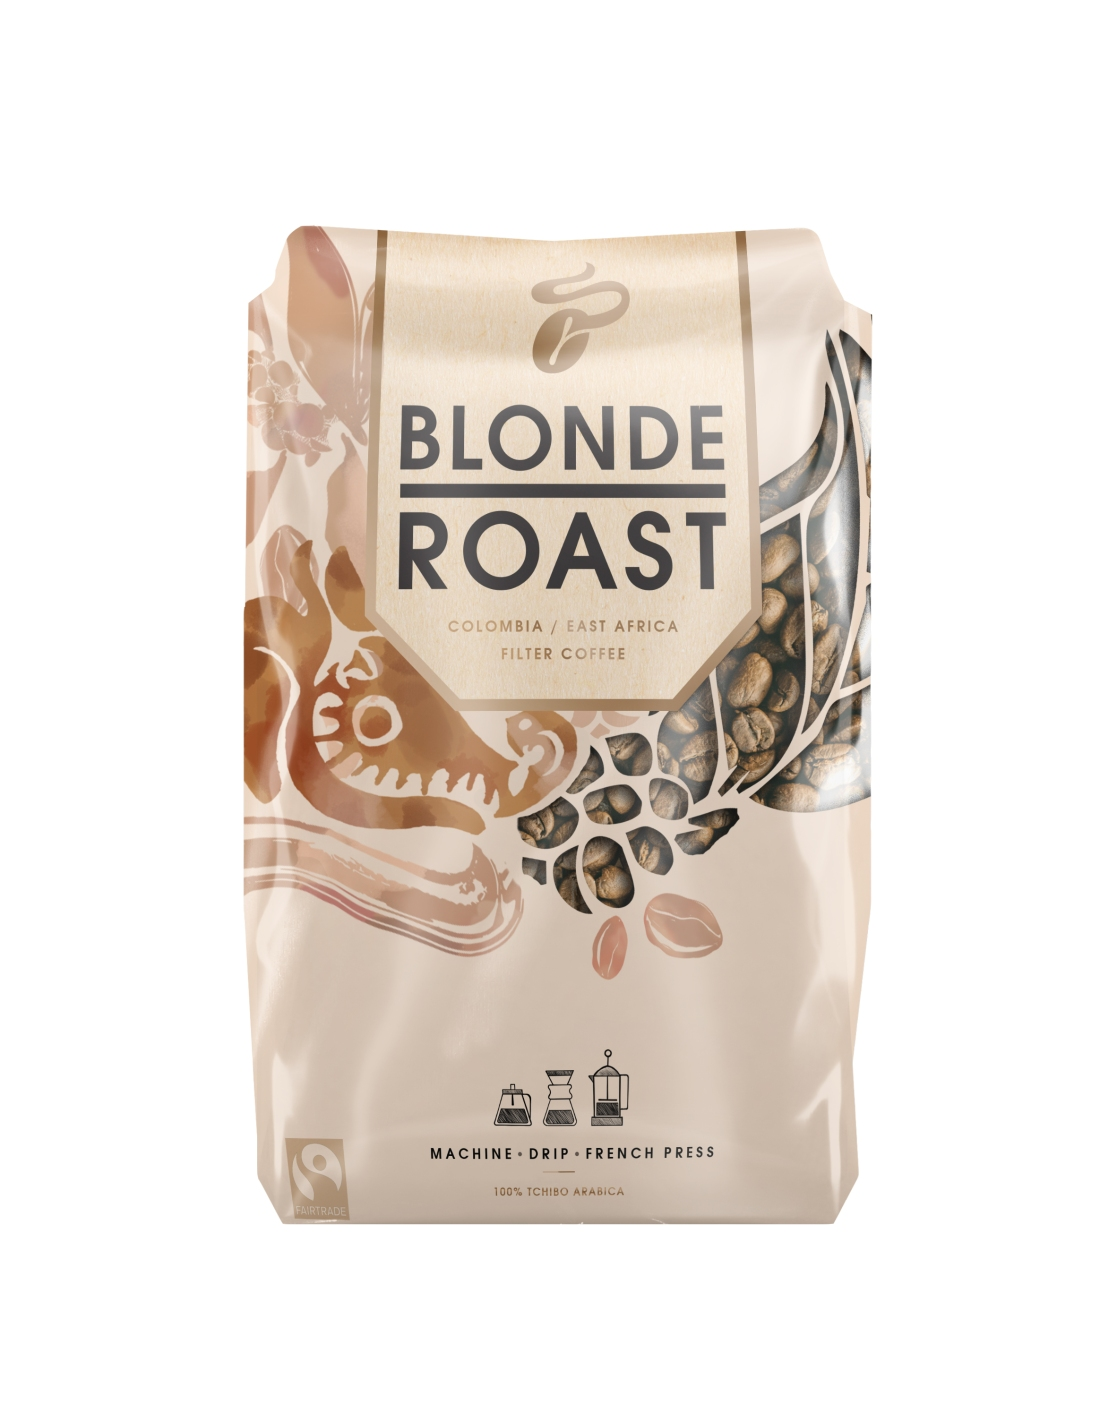 blonderoast_filter_500g_mm_02_fin